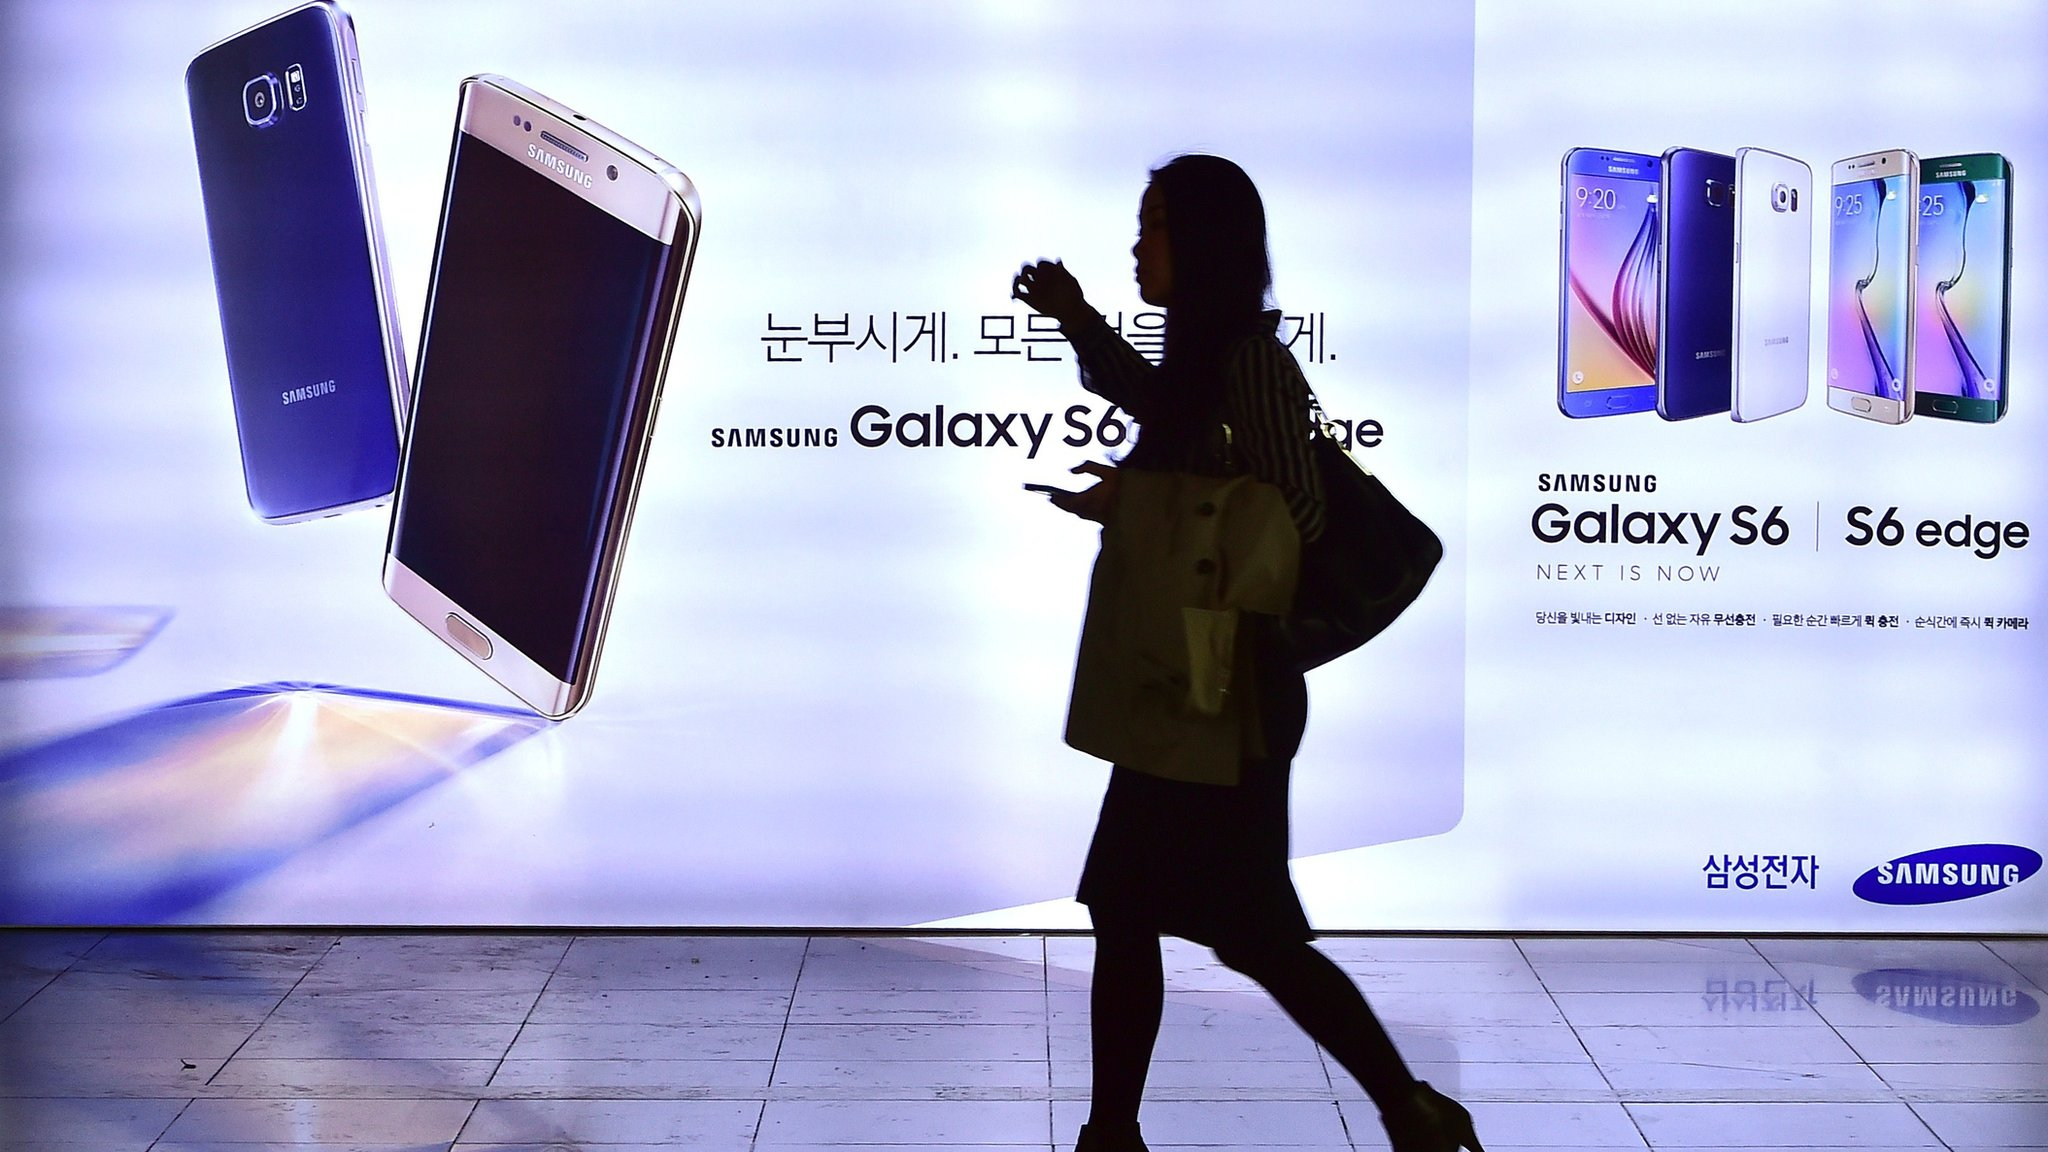 Second quarter earnings for the world's biggest smartphone maker, Samsung Electronics, will likely miss market expectations.